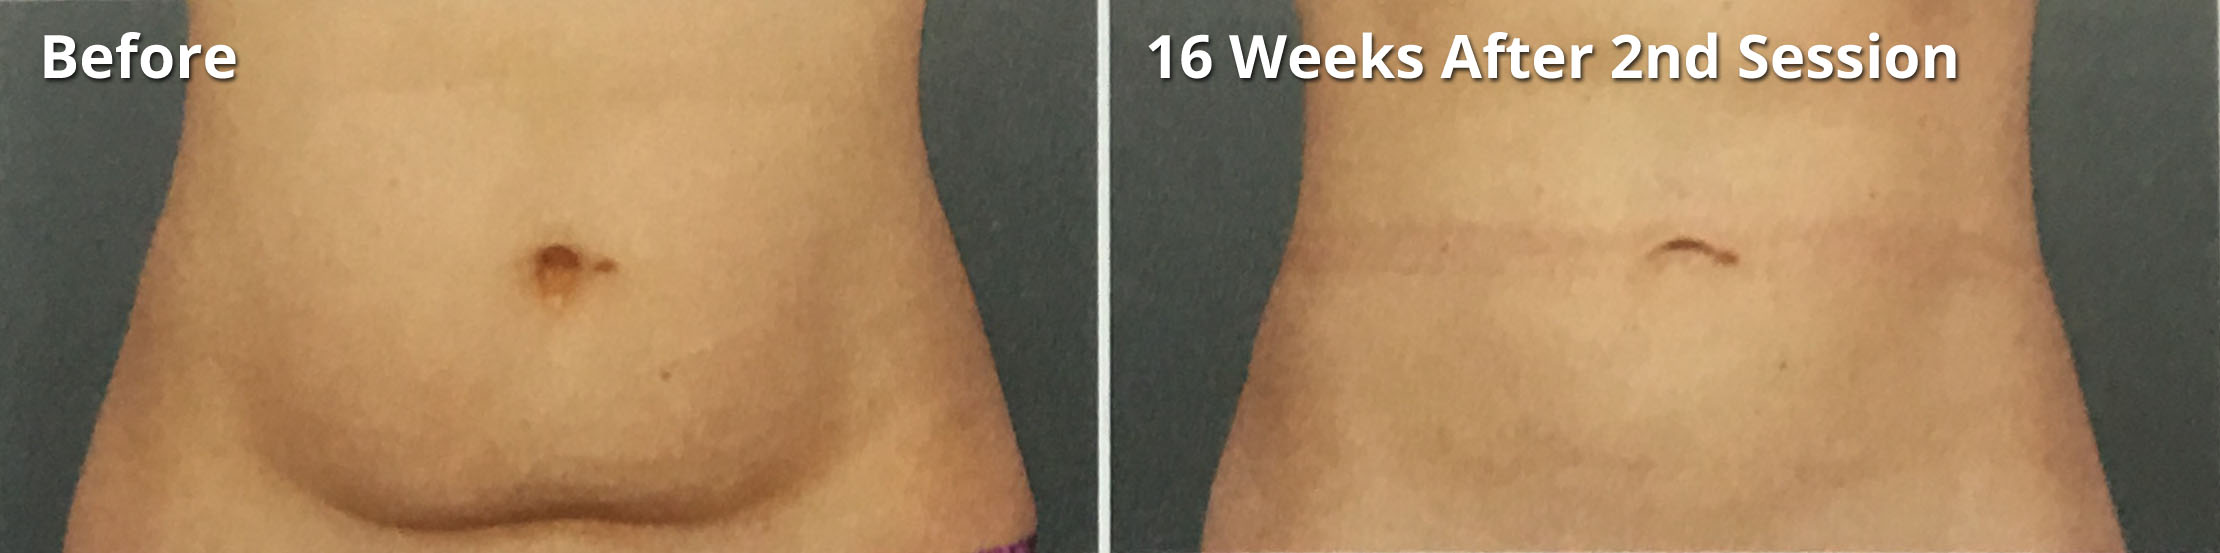 Coolsculpting - Non-surgical fat removal procedure performed by Nina Deep Aesthetics in Columbus, Ohio